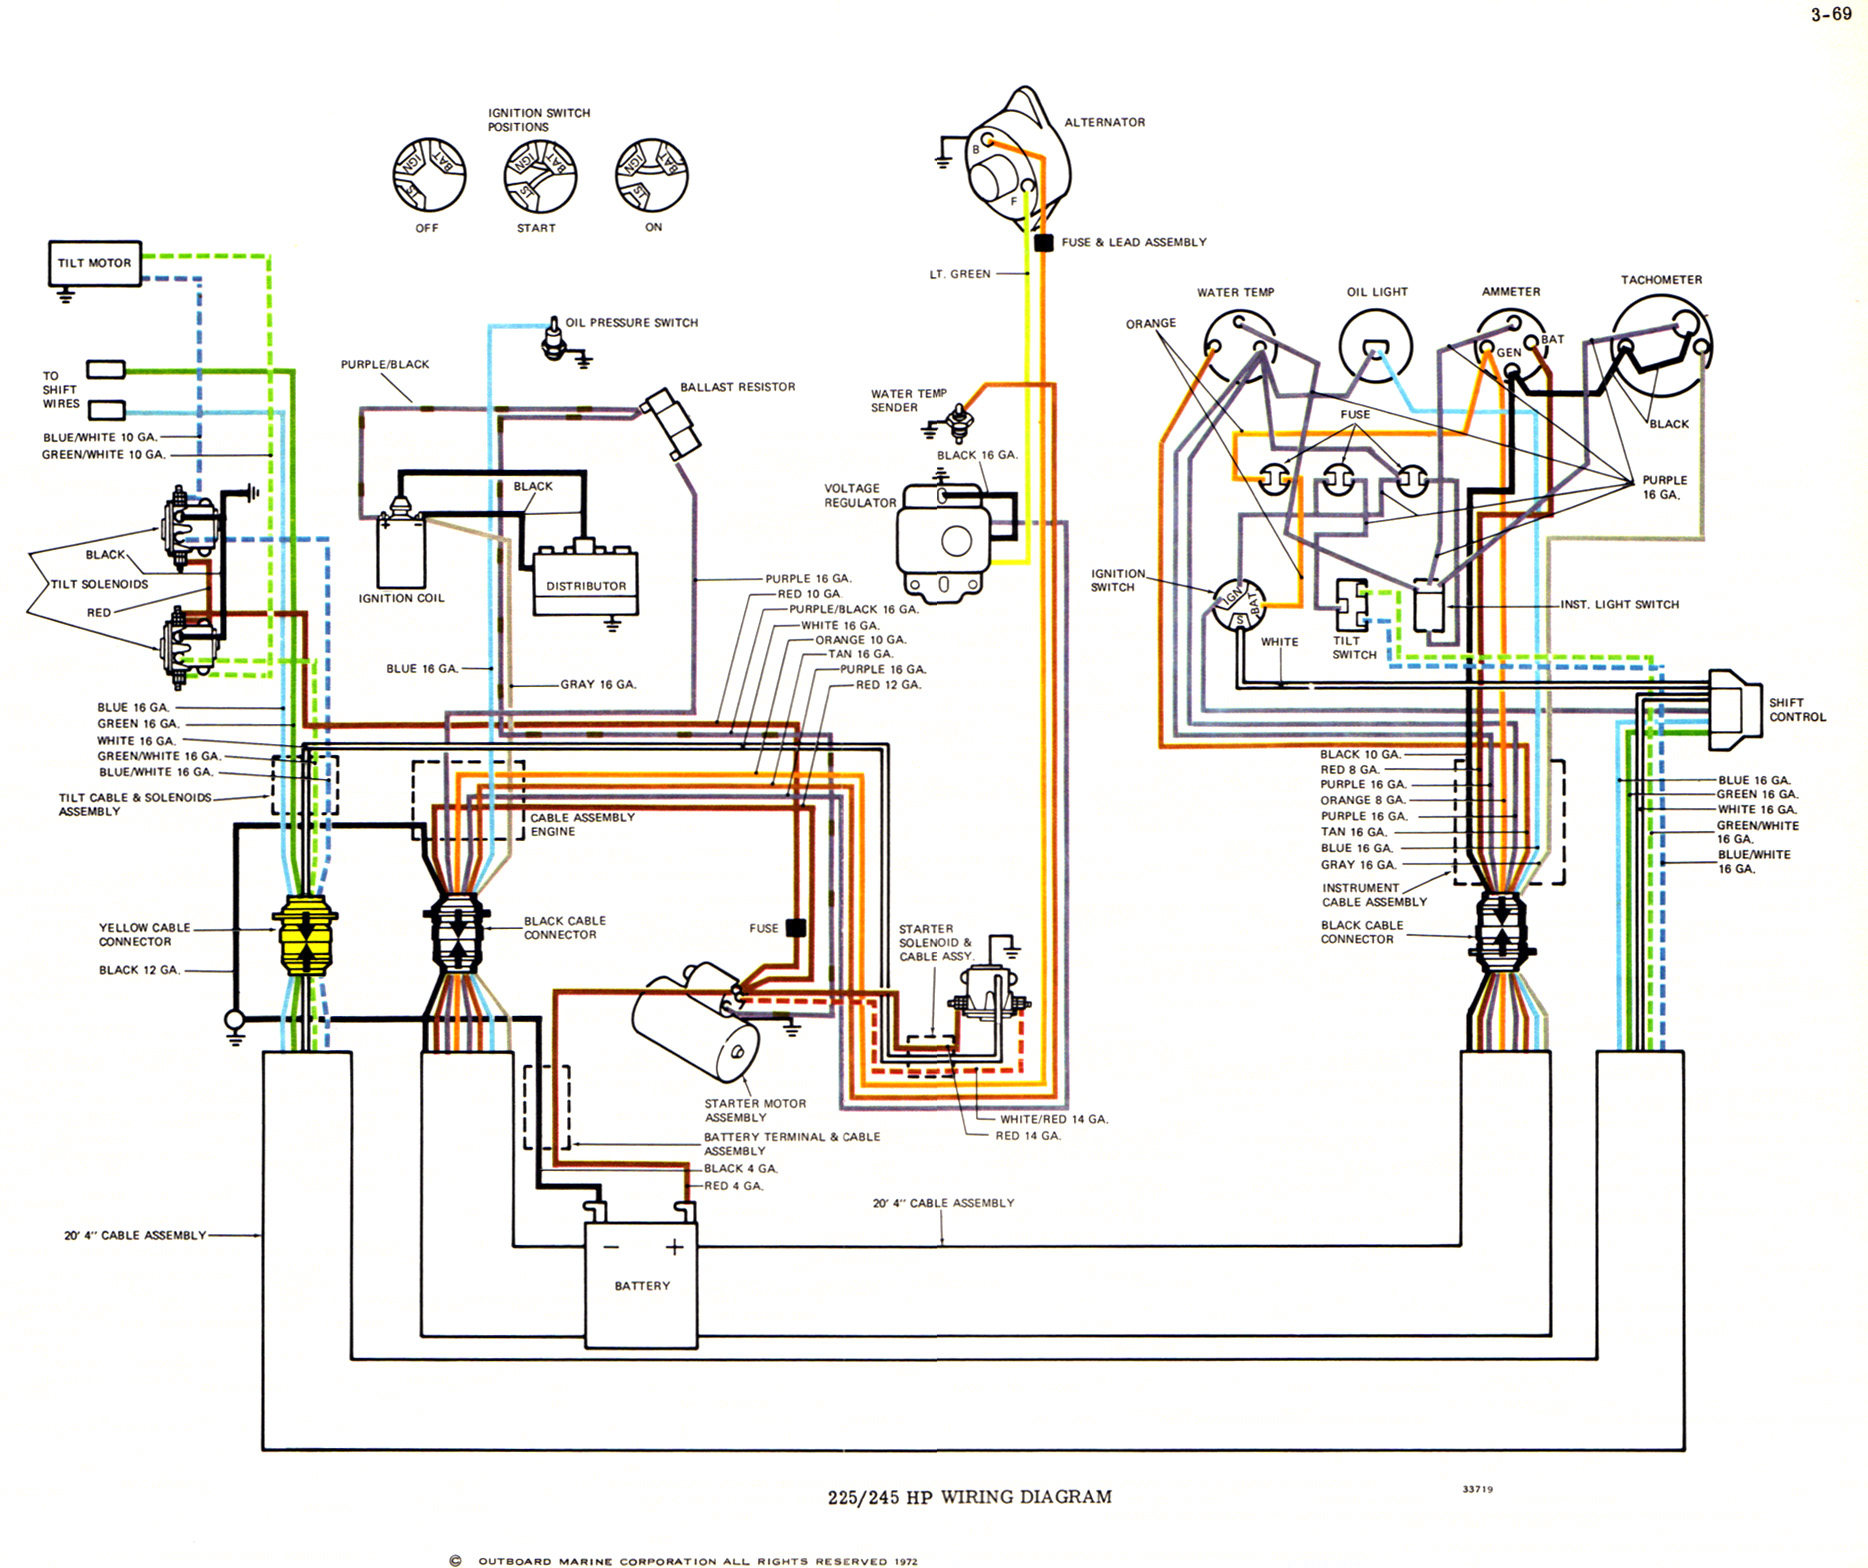 Evinrude Kill Switch Wiring Diagram | Wiring Liry on